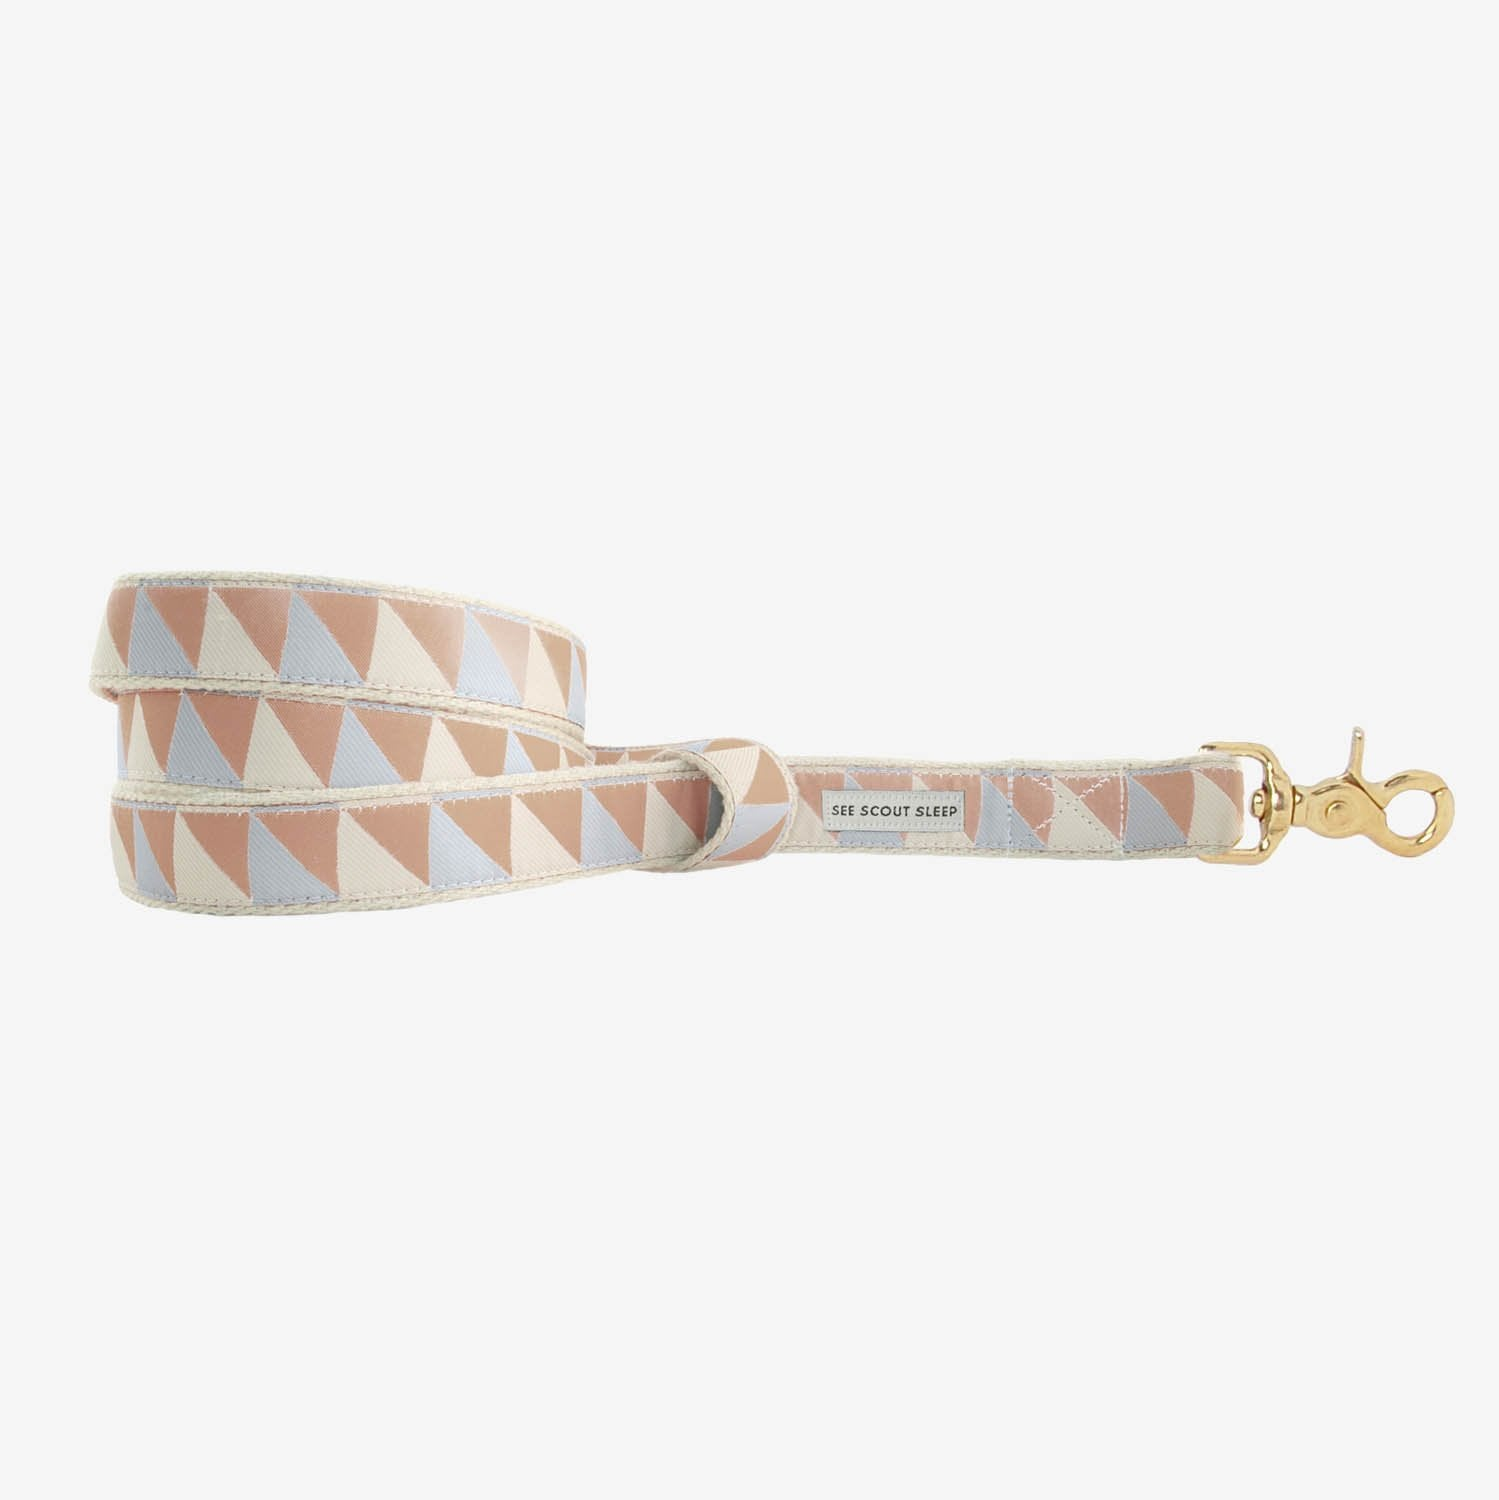 See Scout Sleep Nice Grill Standard Leash - Camel Ivory and Blue